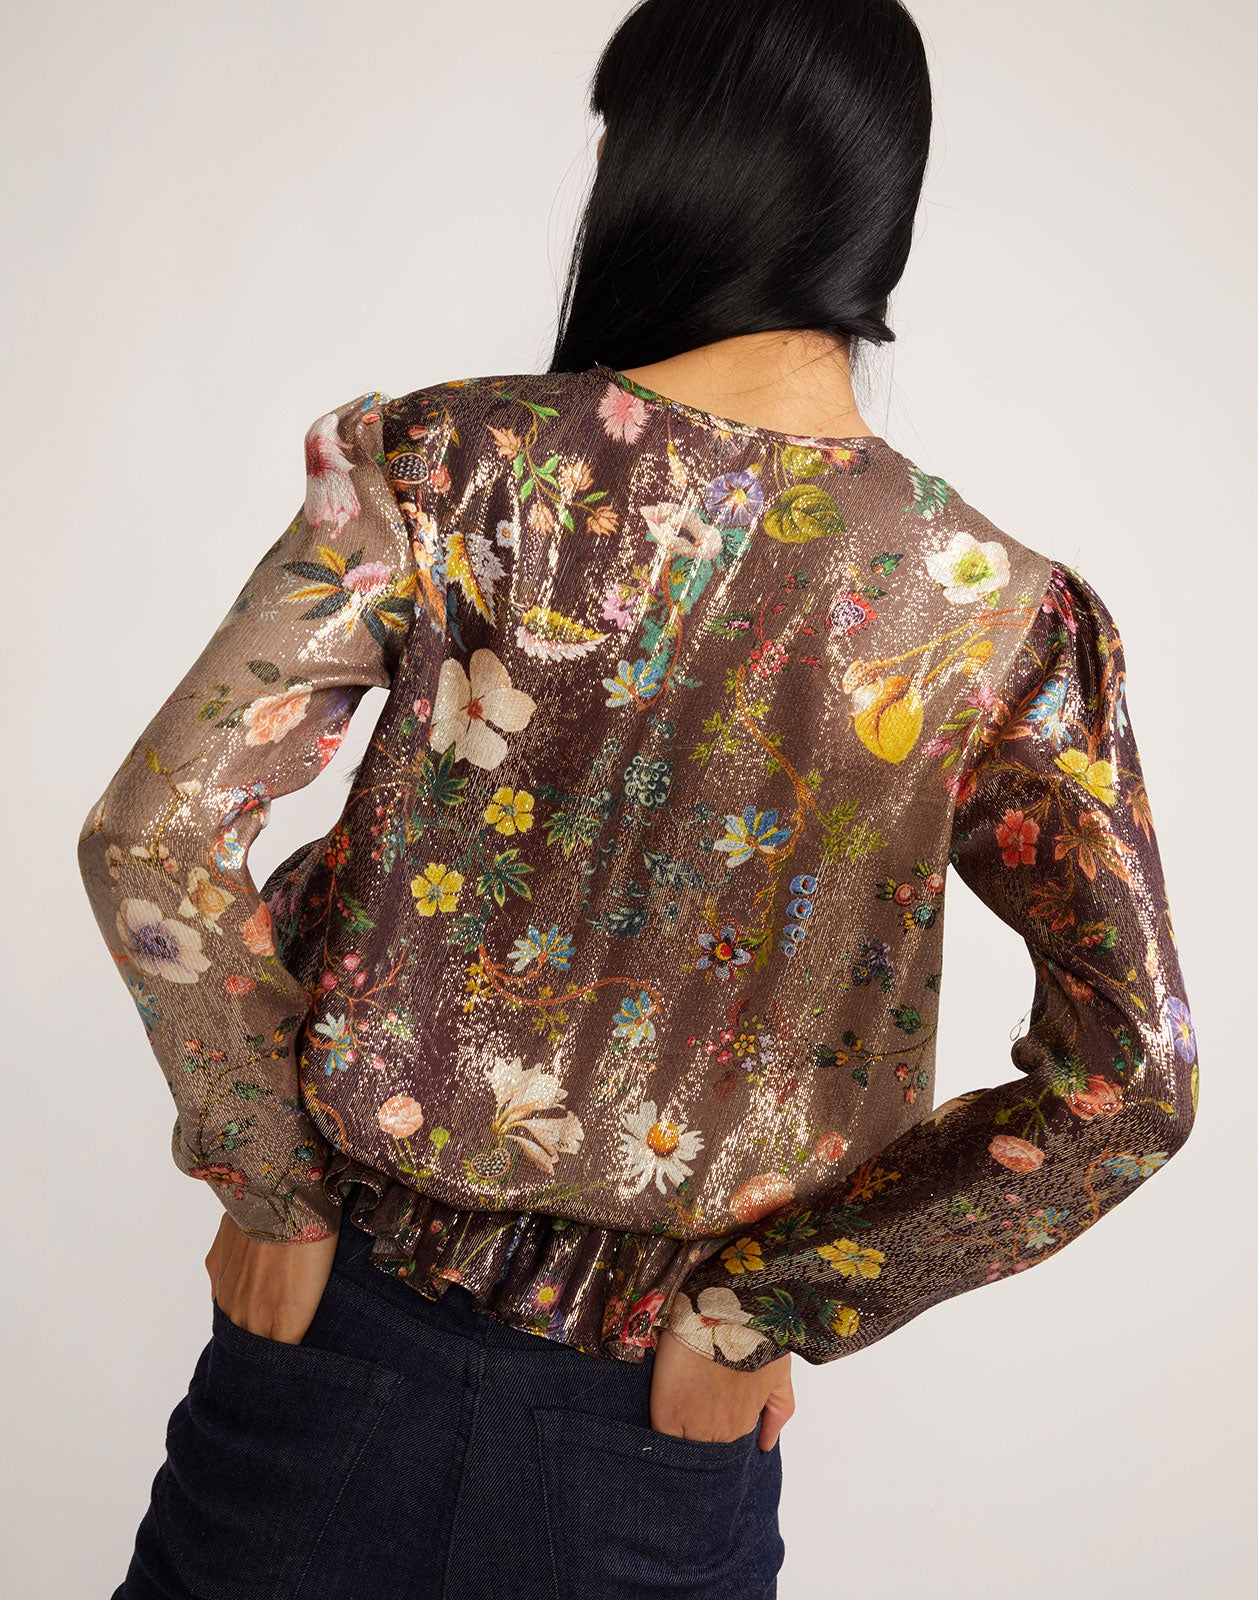 Back view of metallic floral blouse with ruching detail at waist.